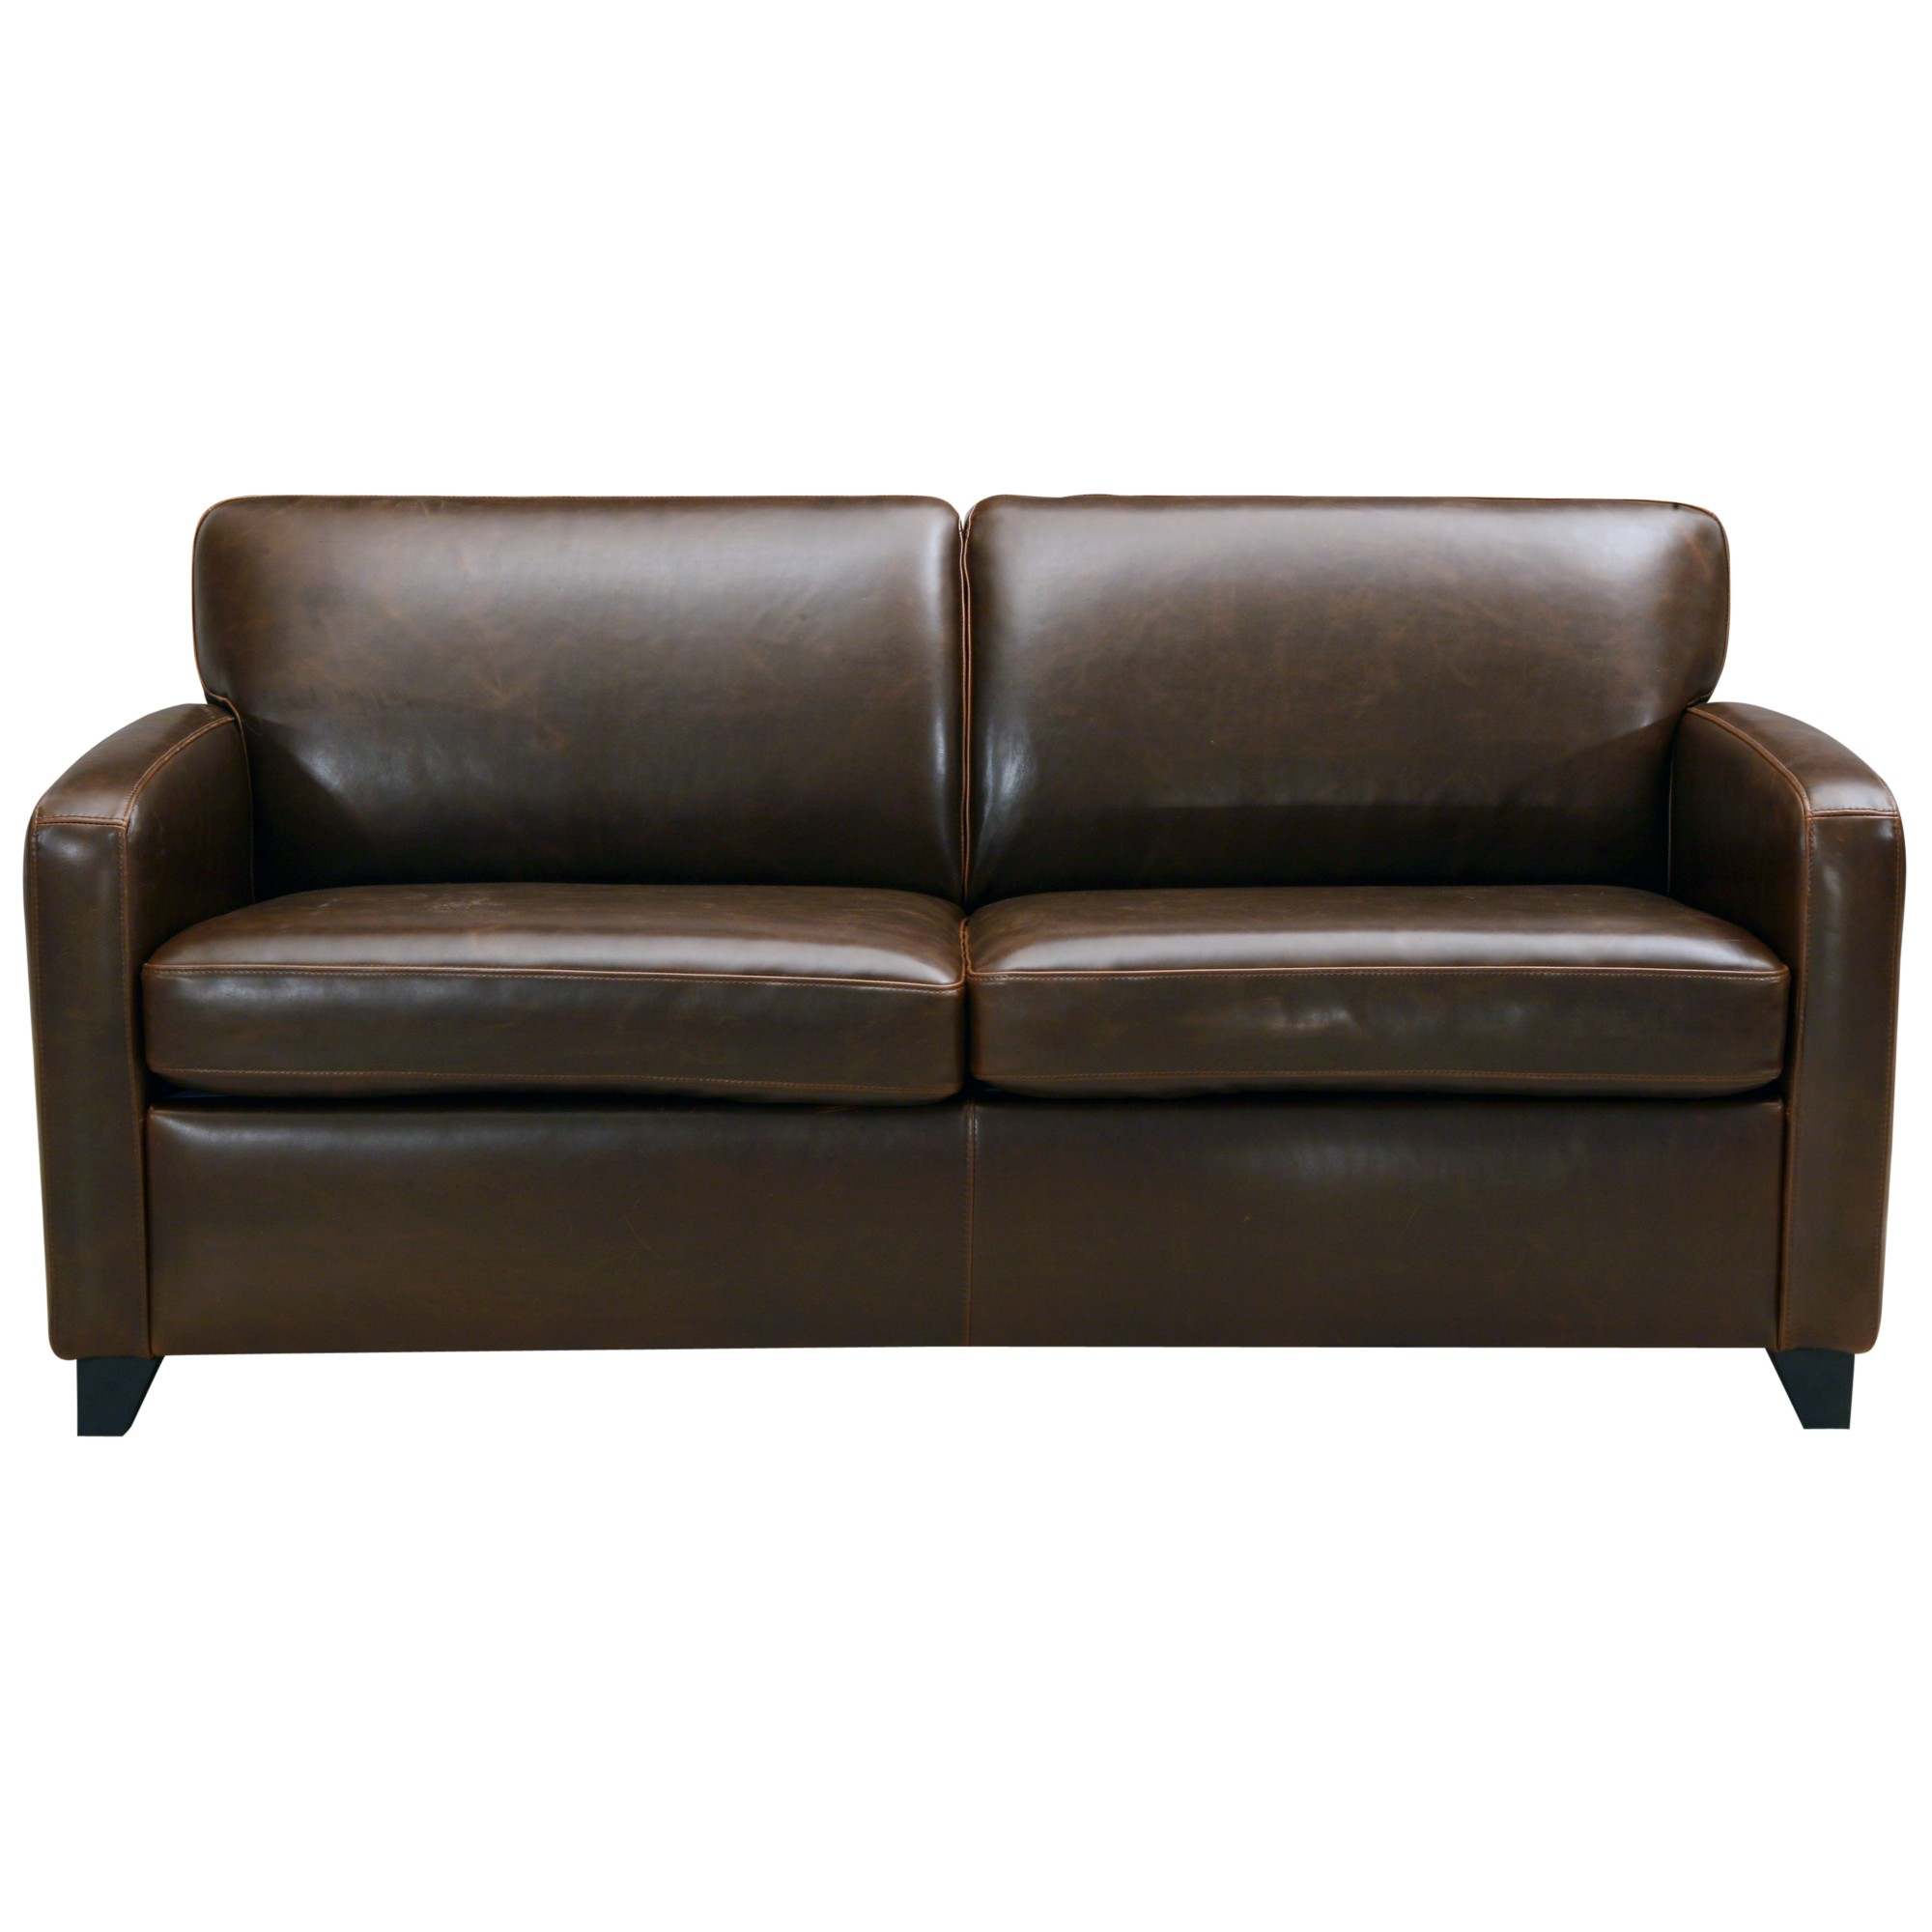 John lewis colby small pu leather sofa chocolate by john for Best place to buy a leather sofa